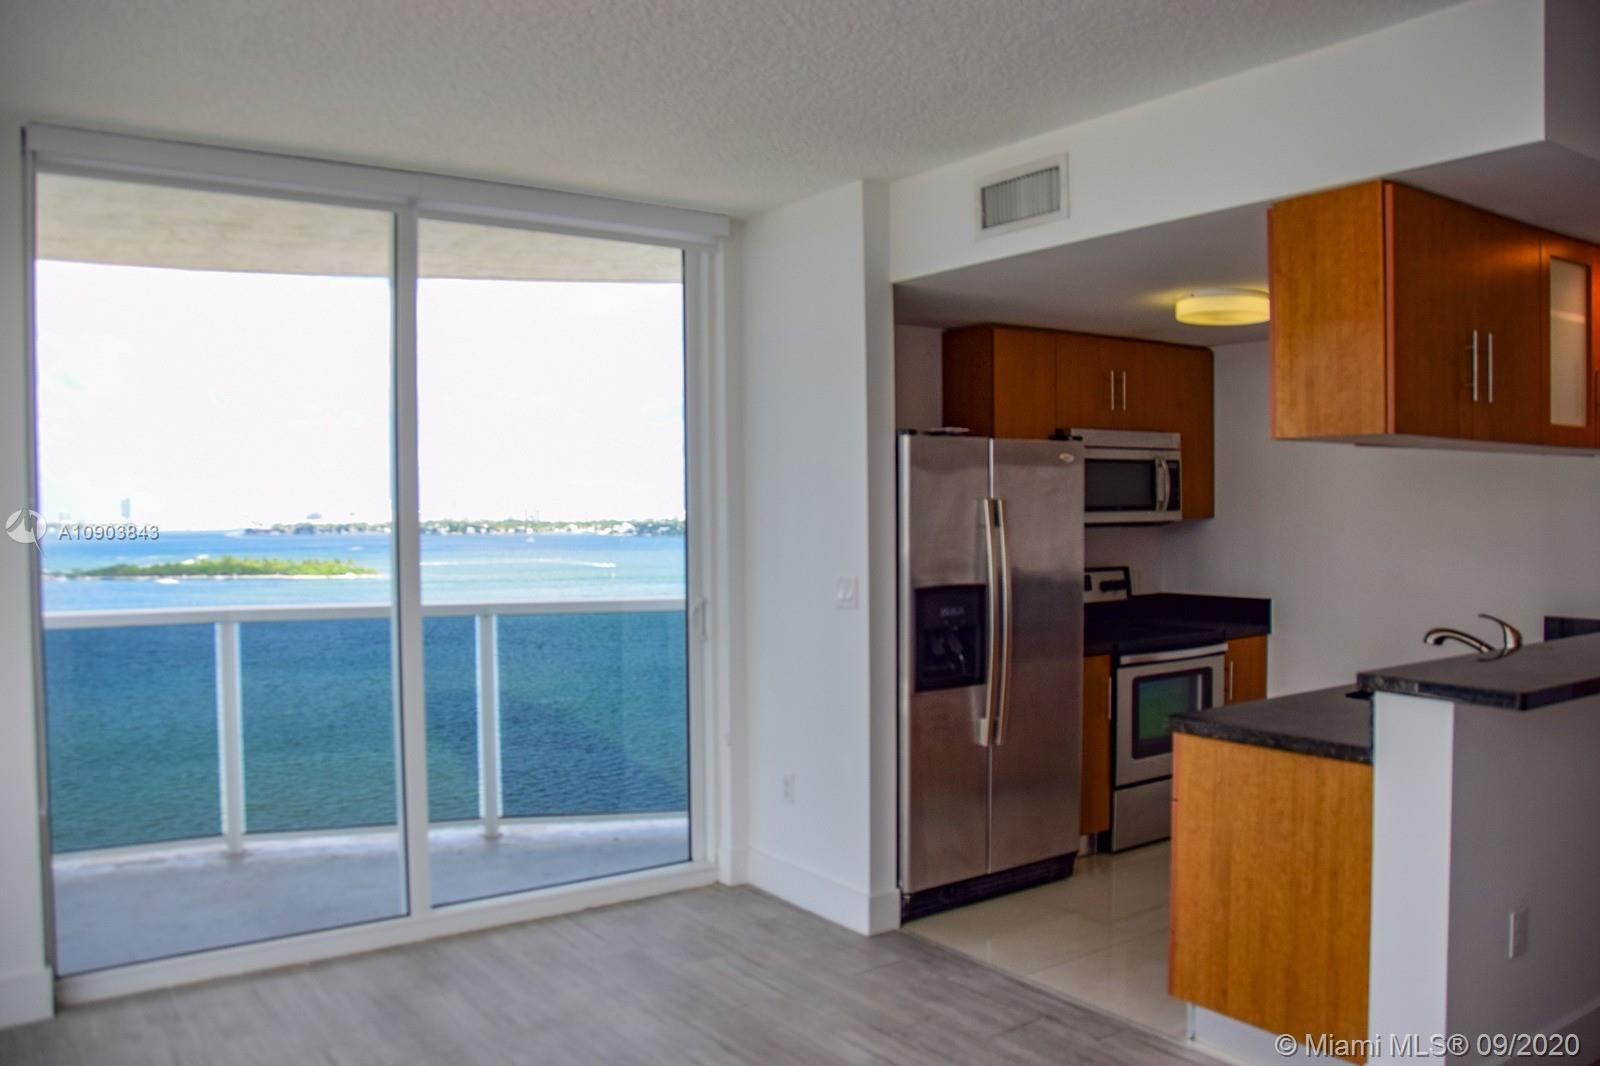 BREATHTAKING VIEWS OF BISCAYNE BAY, STAINLESS STEEL APPLIANCES, STACKABLE WASHER AND DRYER. POLISHED GRANITE COUNTERTOPS AND ITALIAN STYLE CABINETRY.